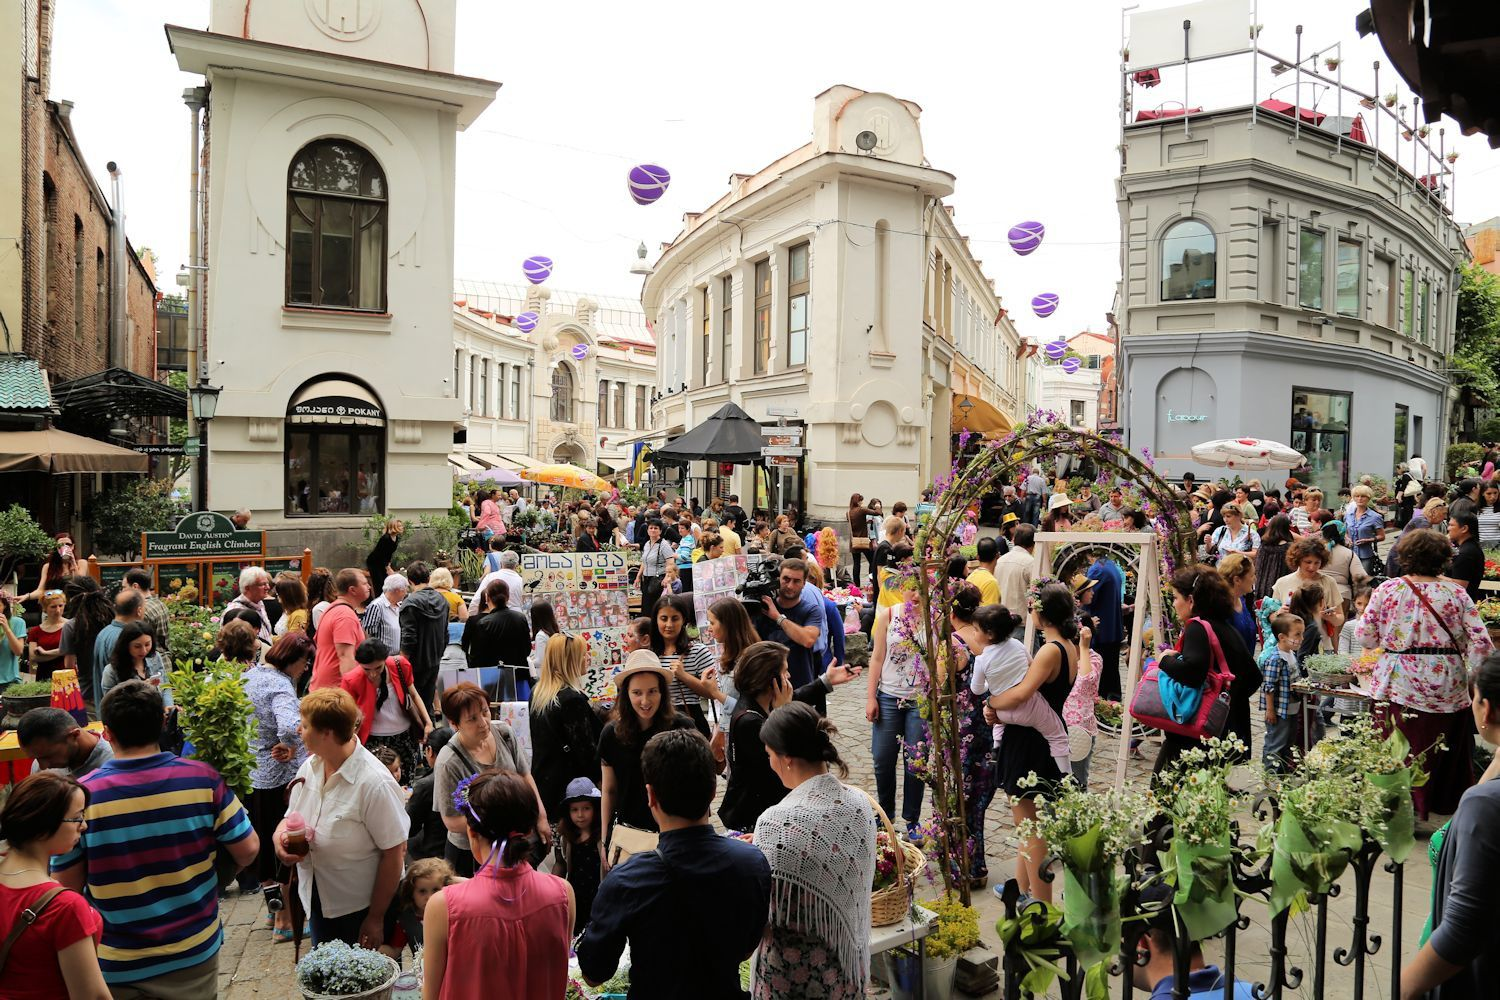 Crowds at the Flower Festival, Tbilisi